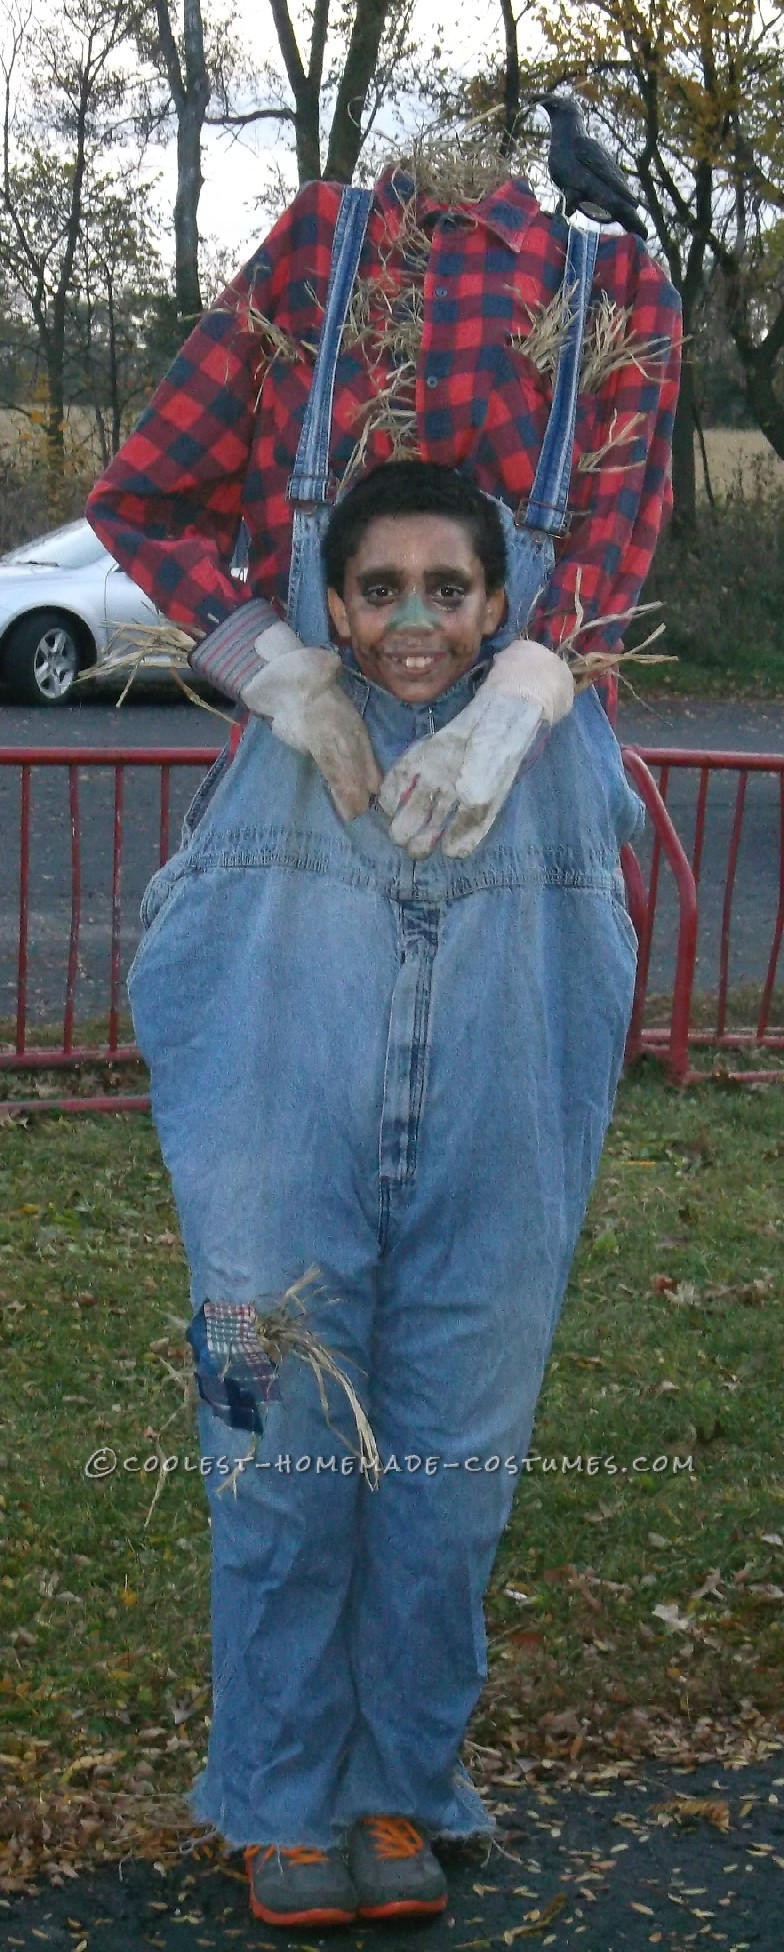 Headless Costume: Scarecrow Gone to the Birds!